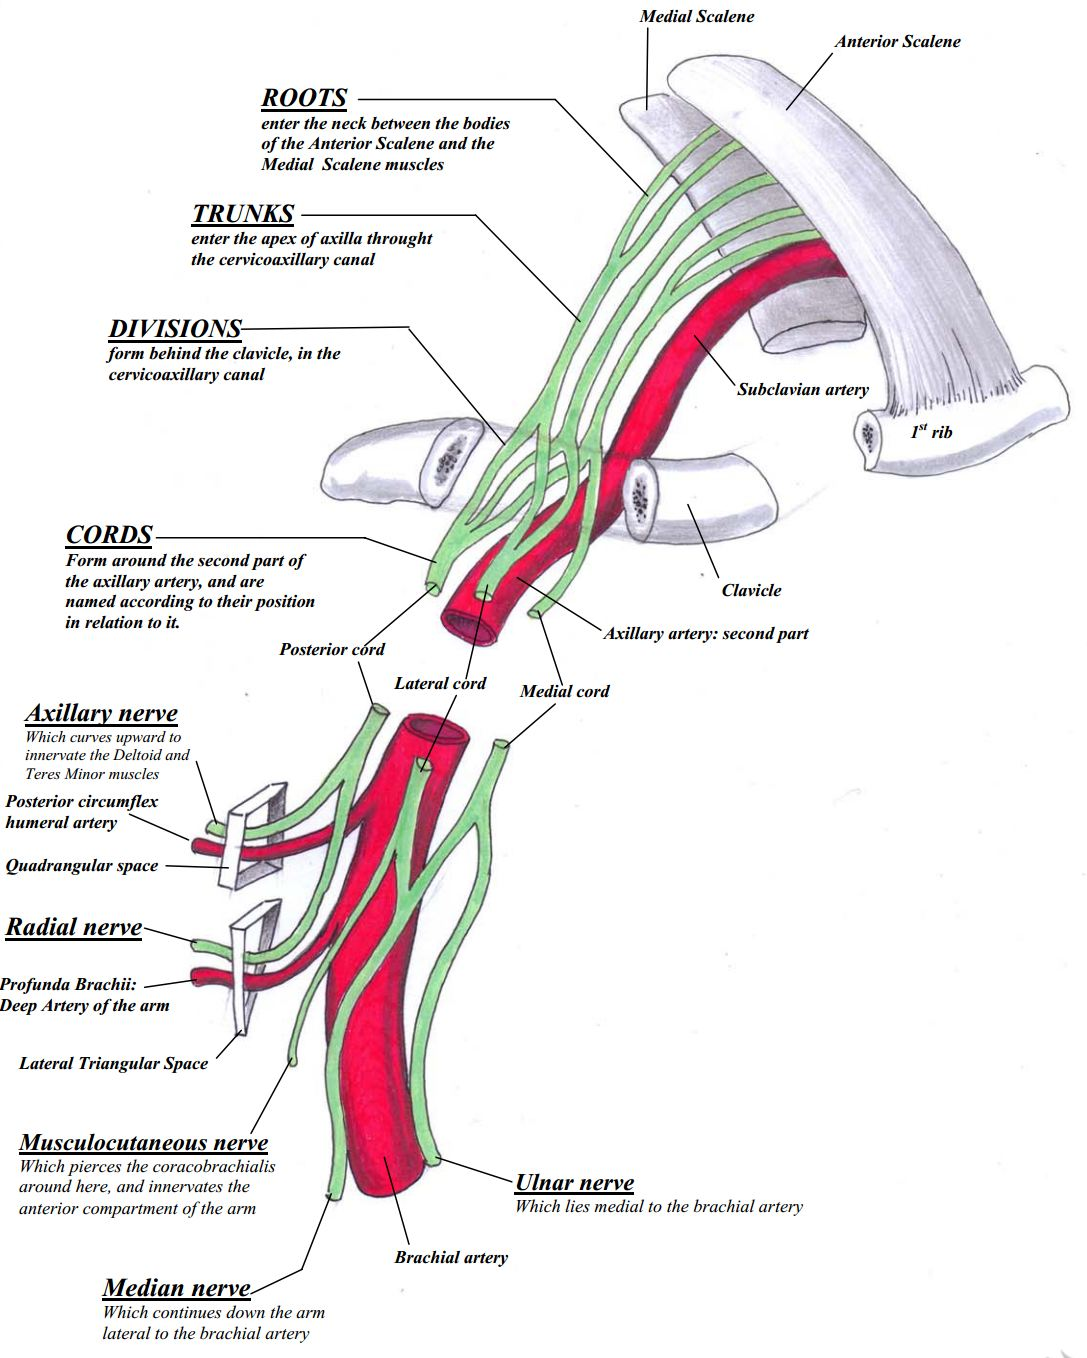 Relations of the brachial plexus